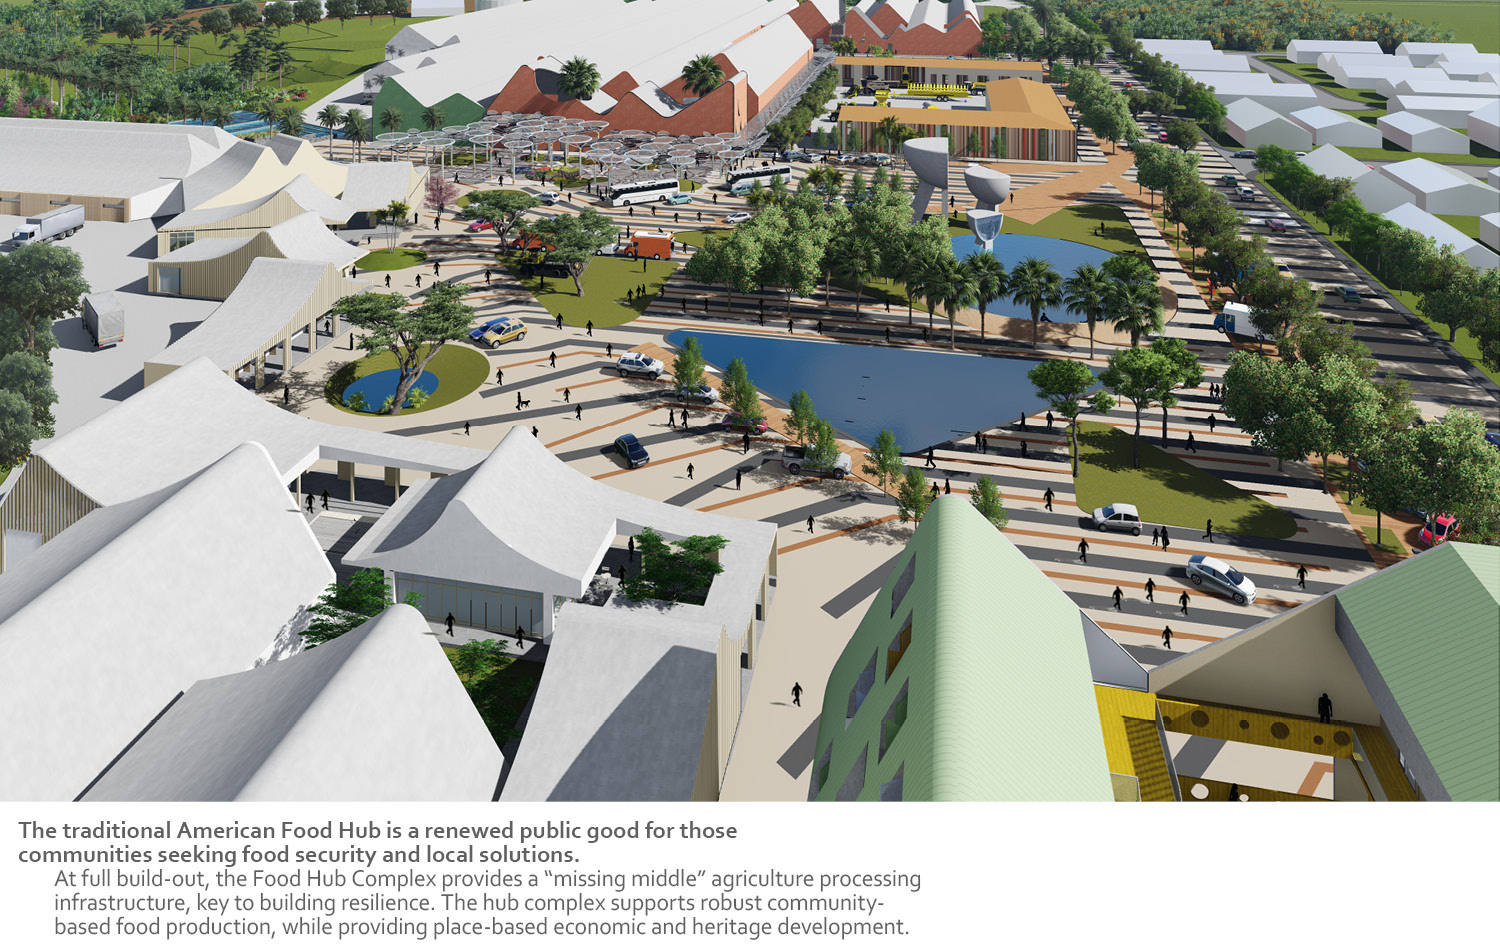 The traditional American Food Hub is a renewed public good for those communities seeking food security and local solutions. University of Arkansas Community Design Center